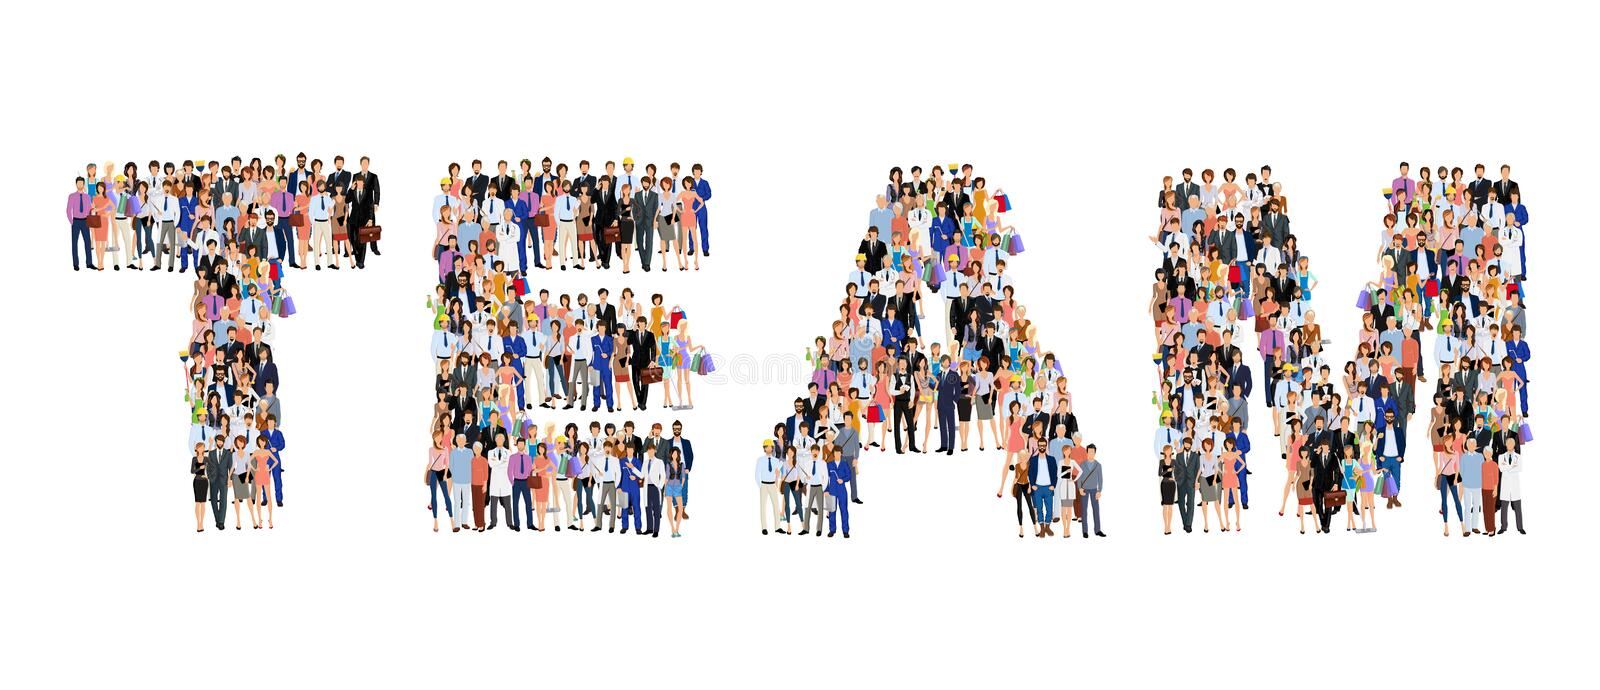 Group of people team poster. Group of people adult professionals in team lettering shape poster vector illustration royalty free illustration